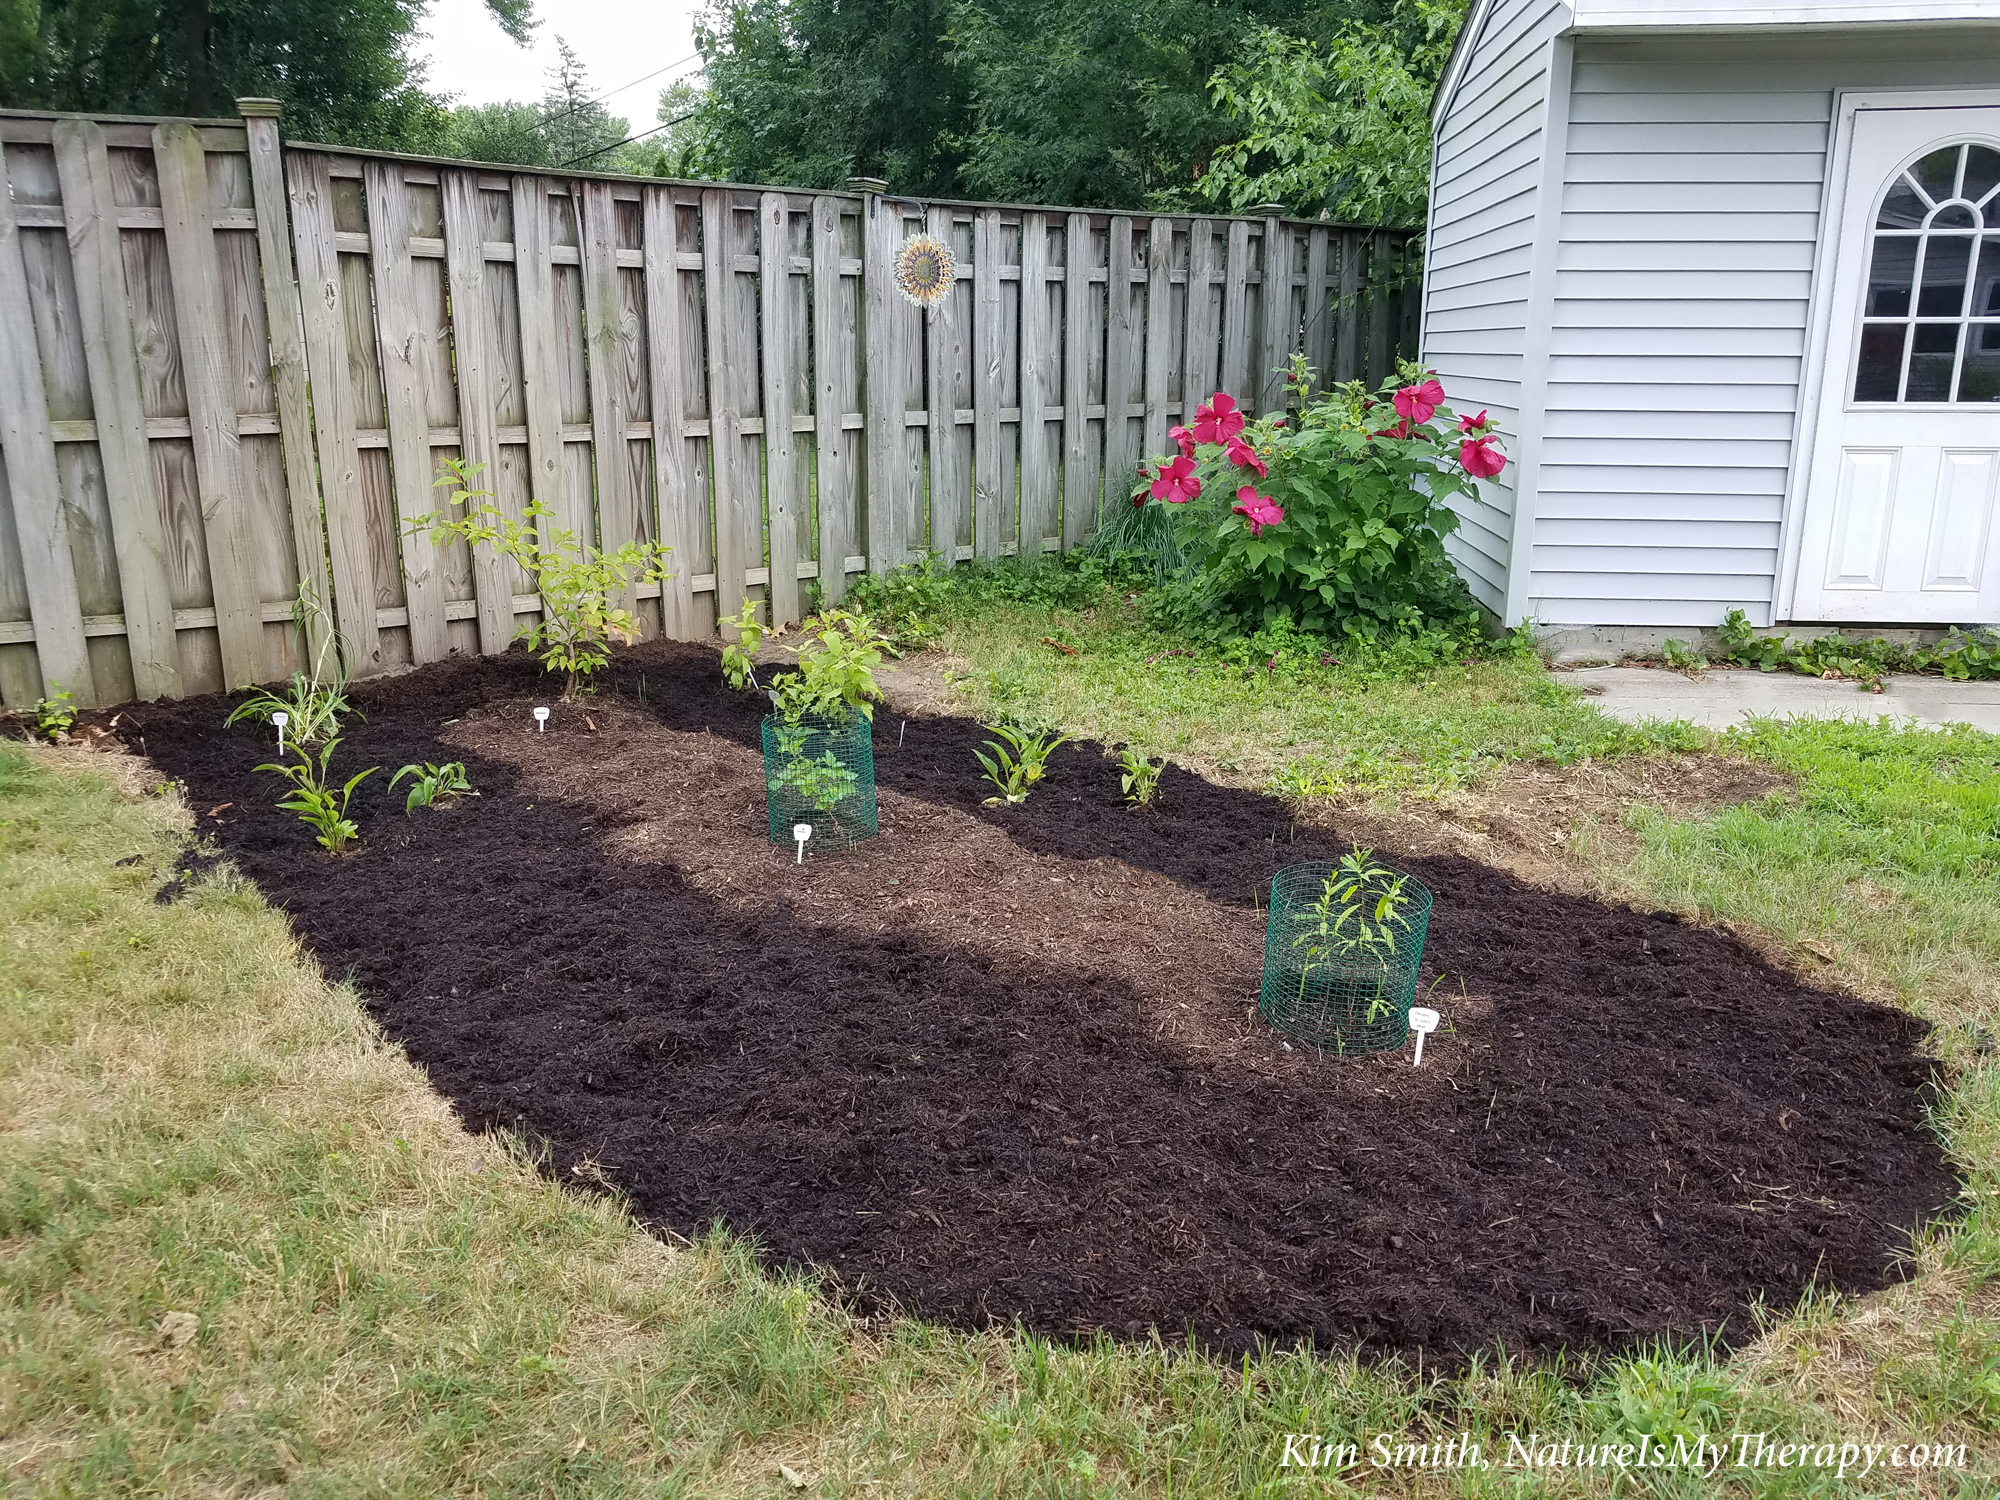 New garden bed July 29 2020 - blog - NIMT